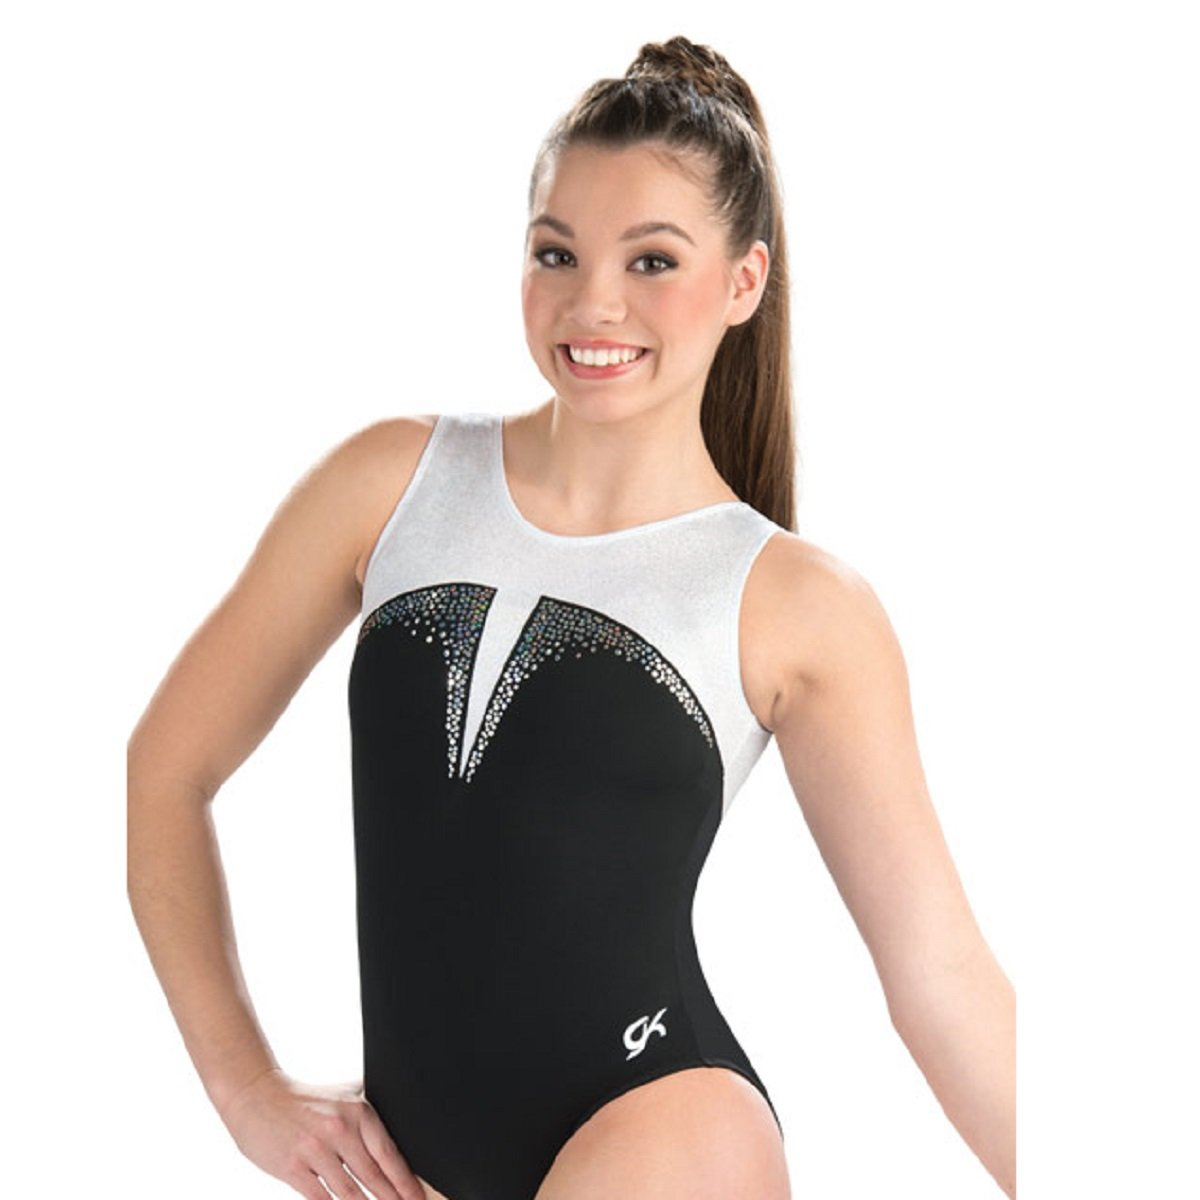 GK Elite Black Tie Sparkle Tank Leotard Child Large CS by GK Elite